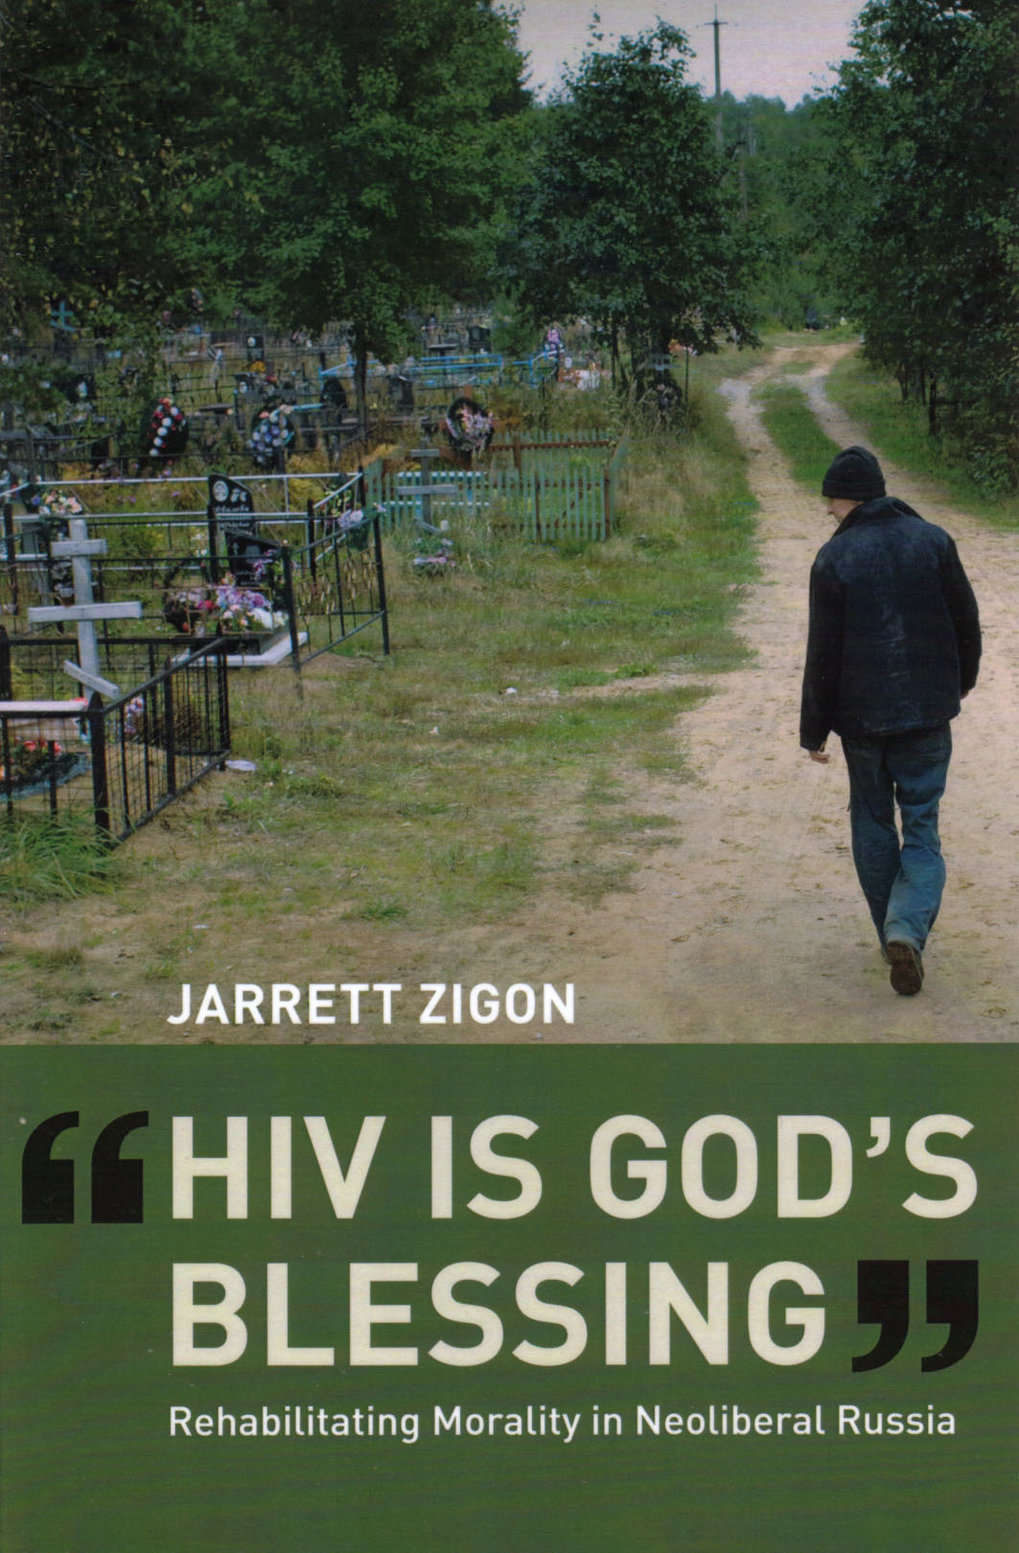 HIV is God's Blessing: rehabilitating morality in neoliberal Russia